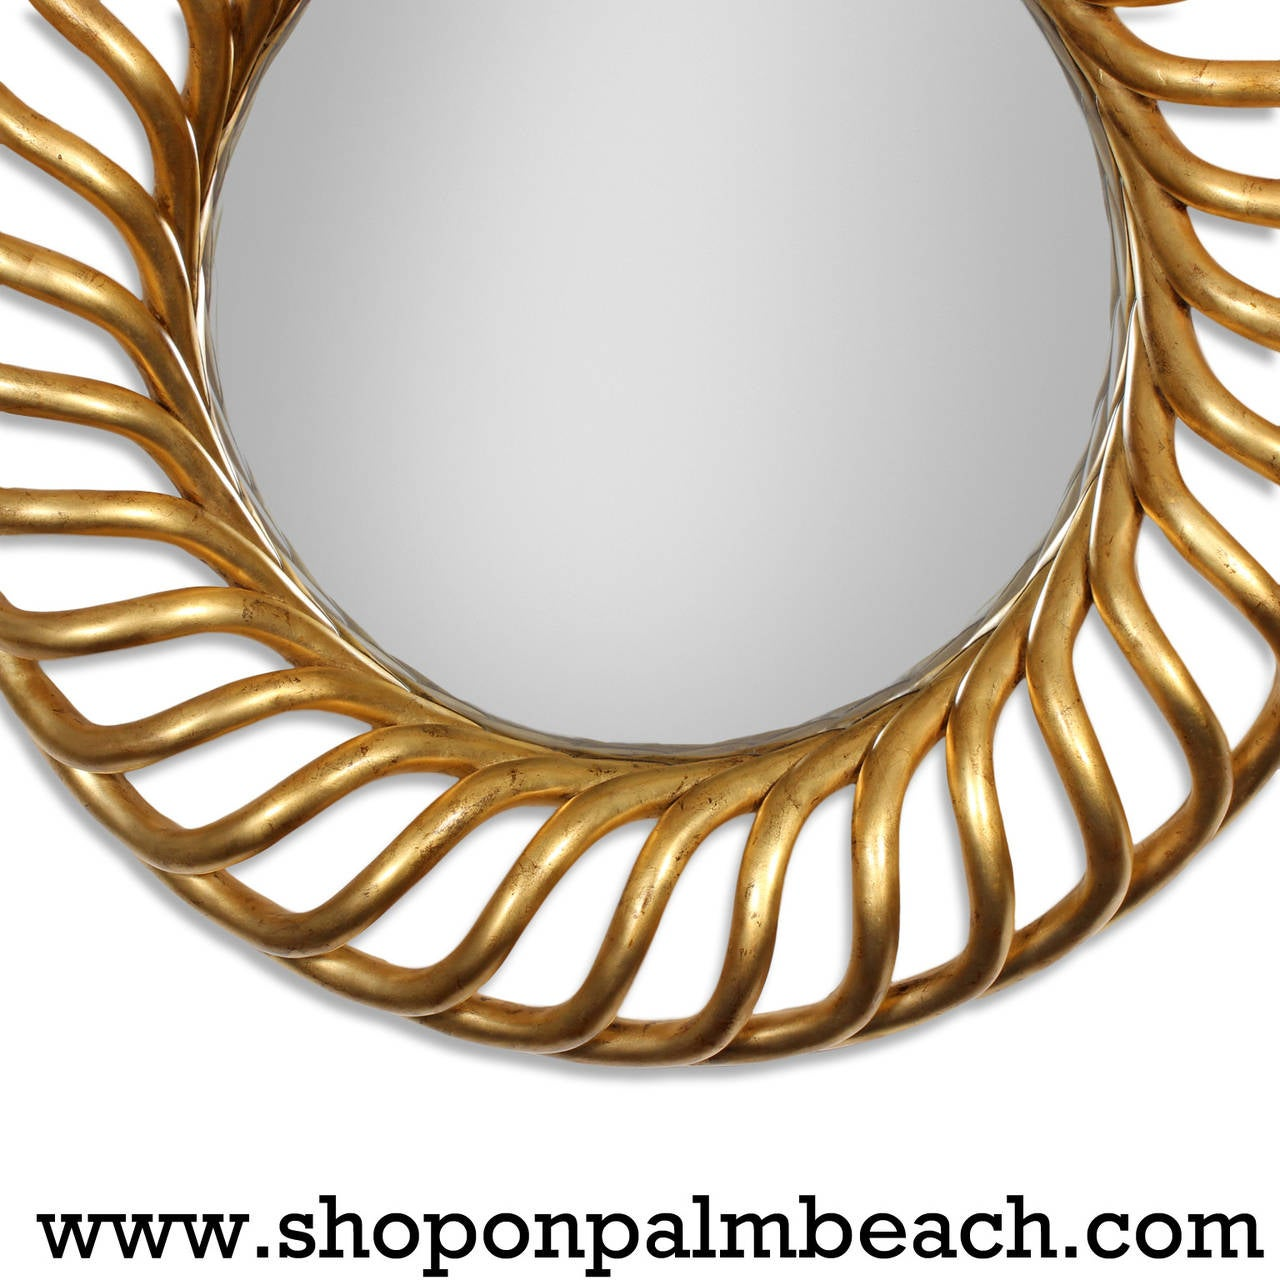 Round Mirrors For Sale Large Round Gold Gilt Mirror For Sale At 1stdibs